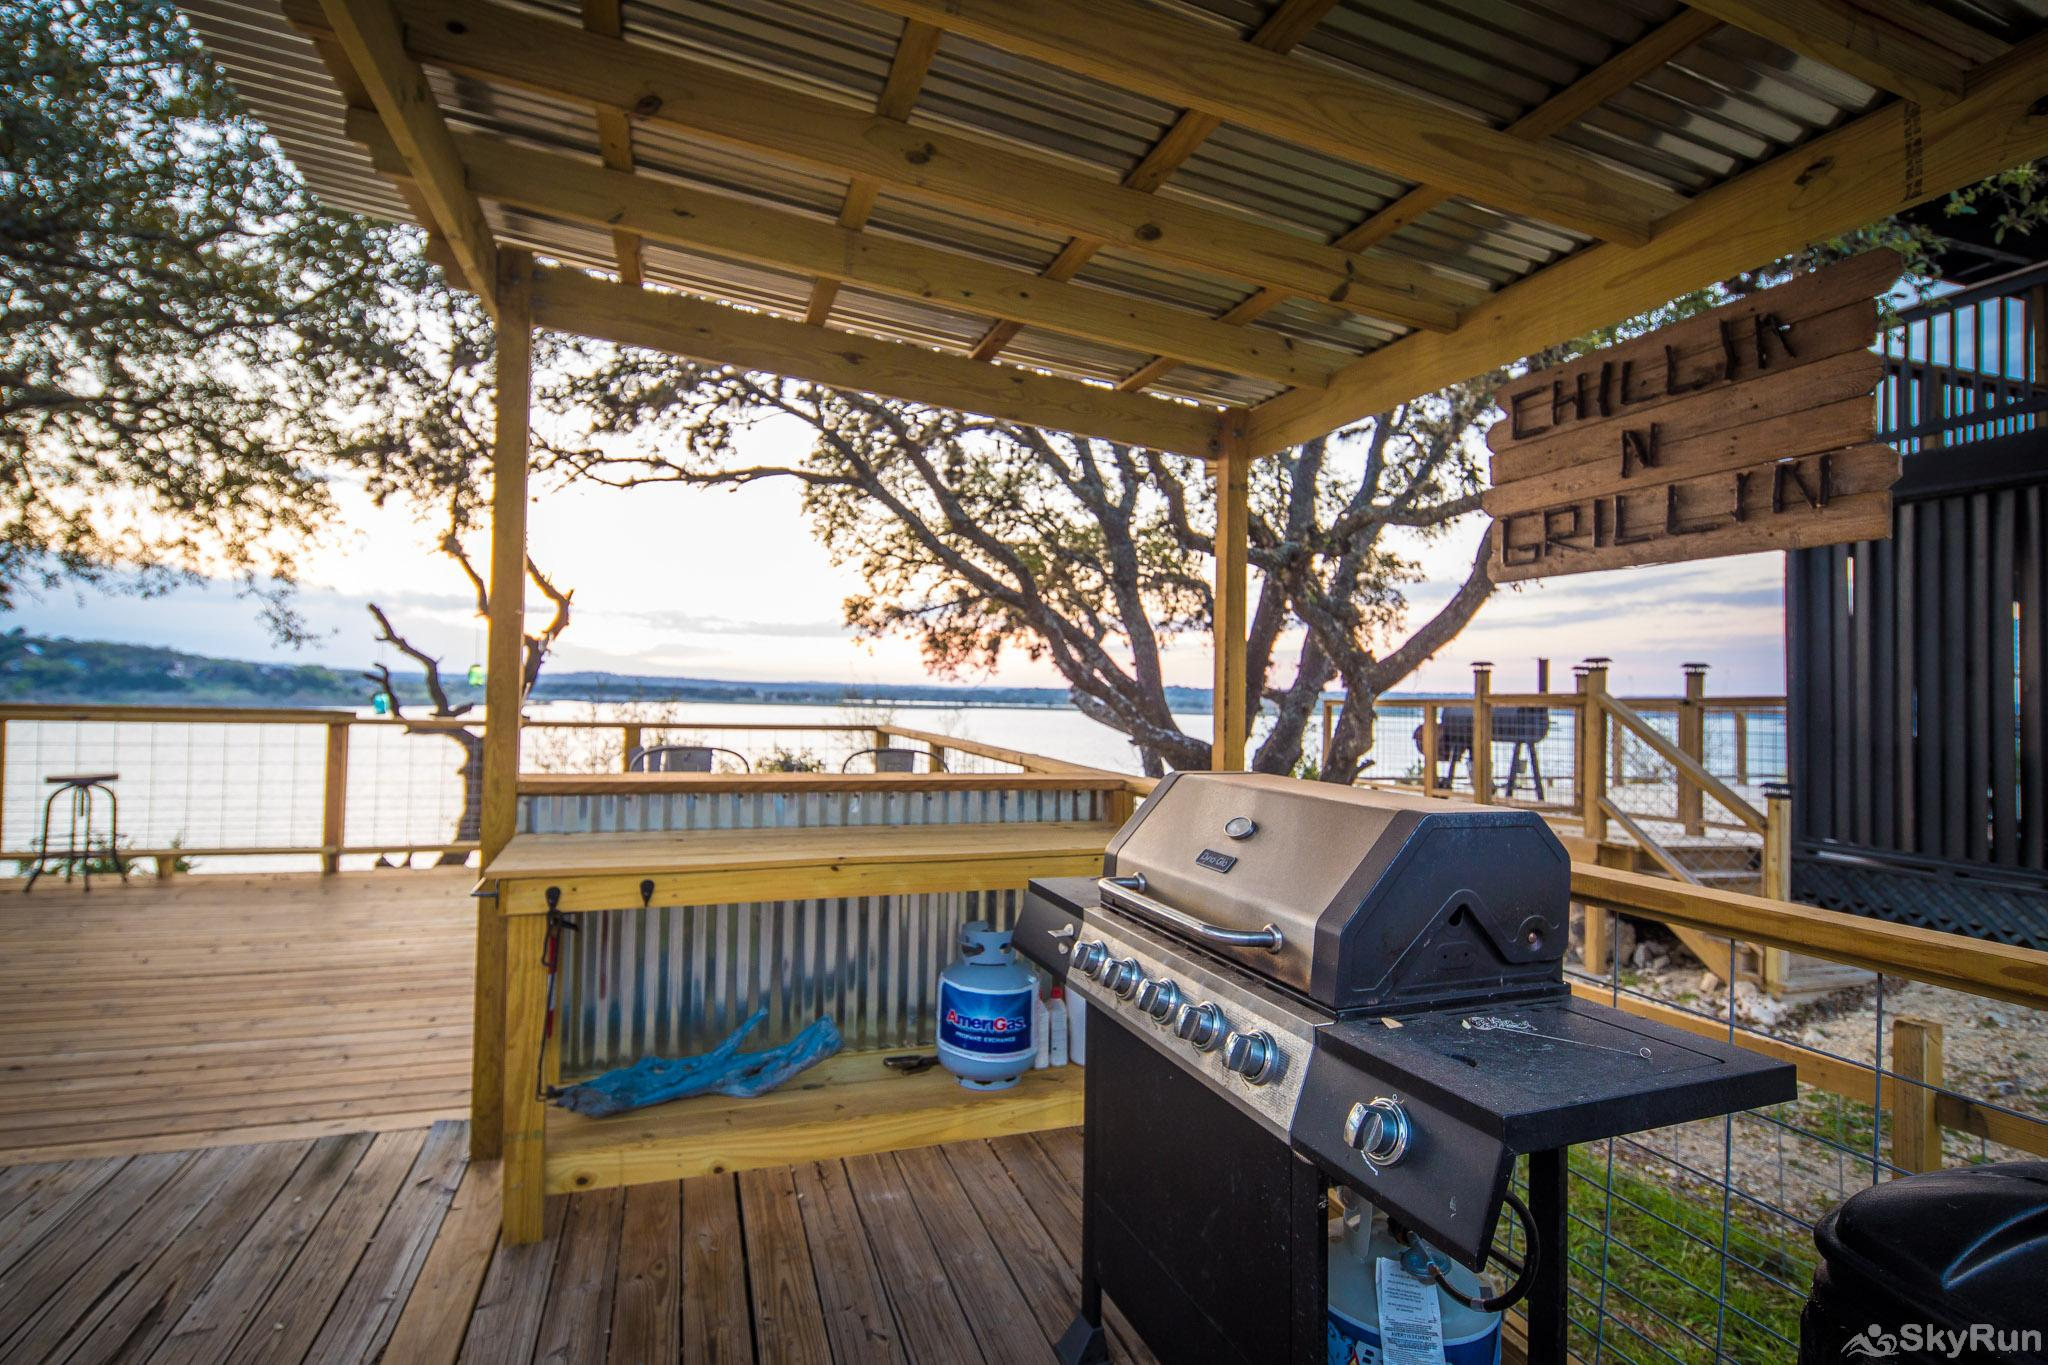 CLIFF HOUSE AT CANYON LAKE Barbecue area with propane provided